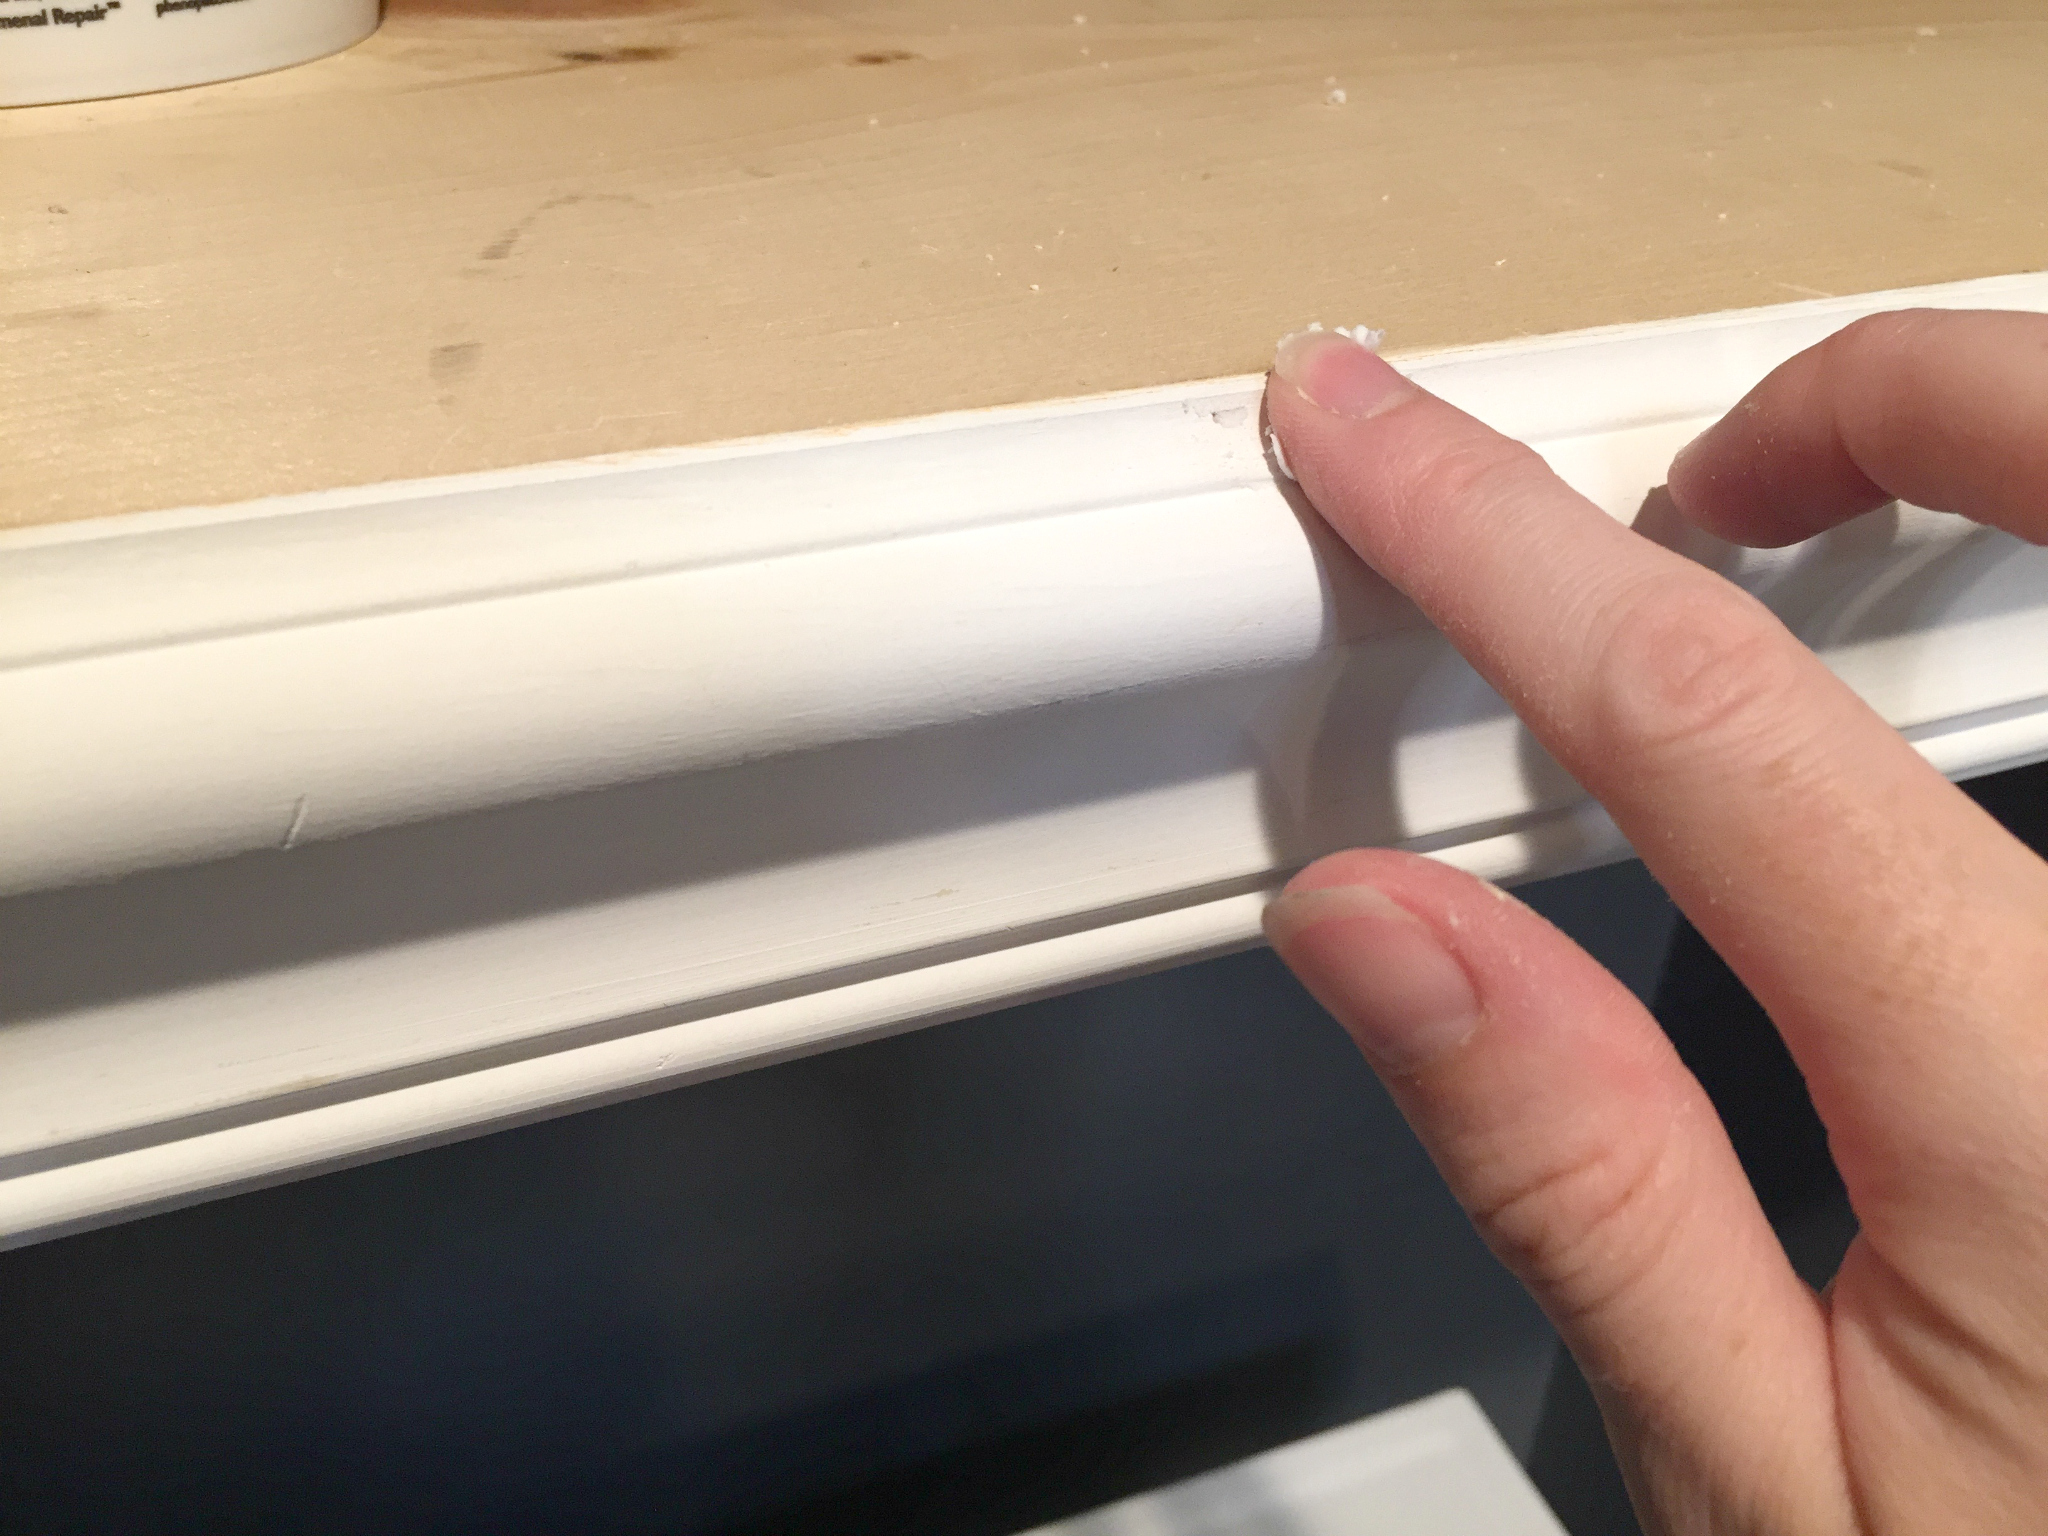 Nails For Trim Baseboard What Size